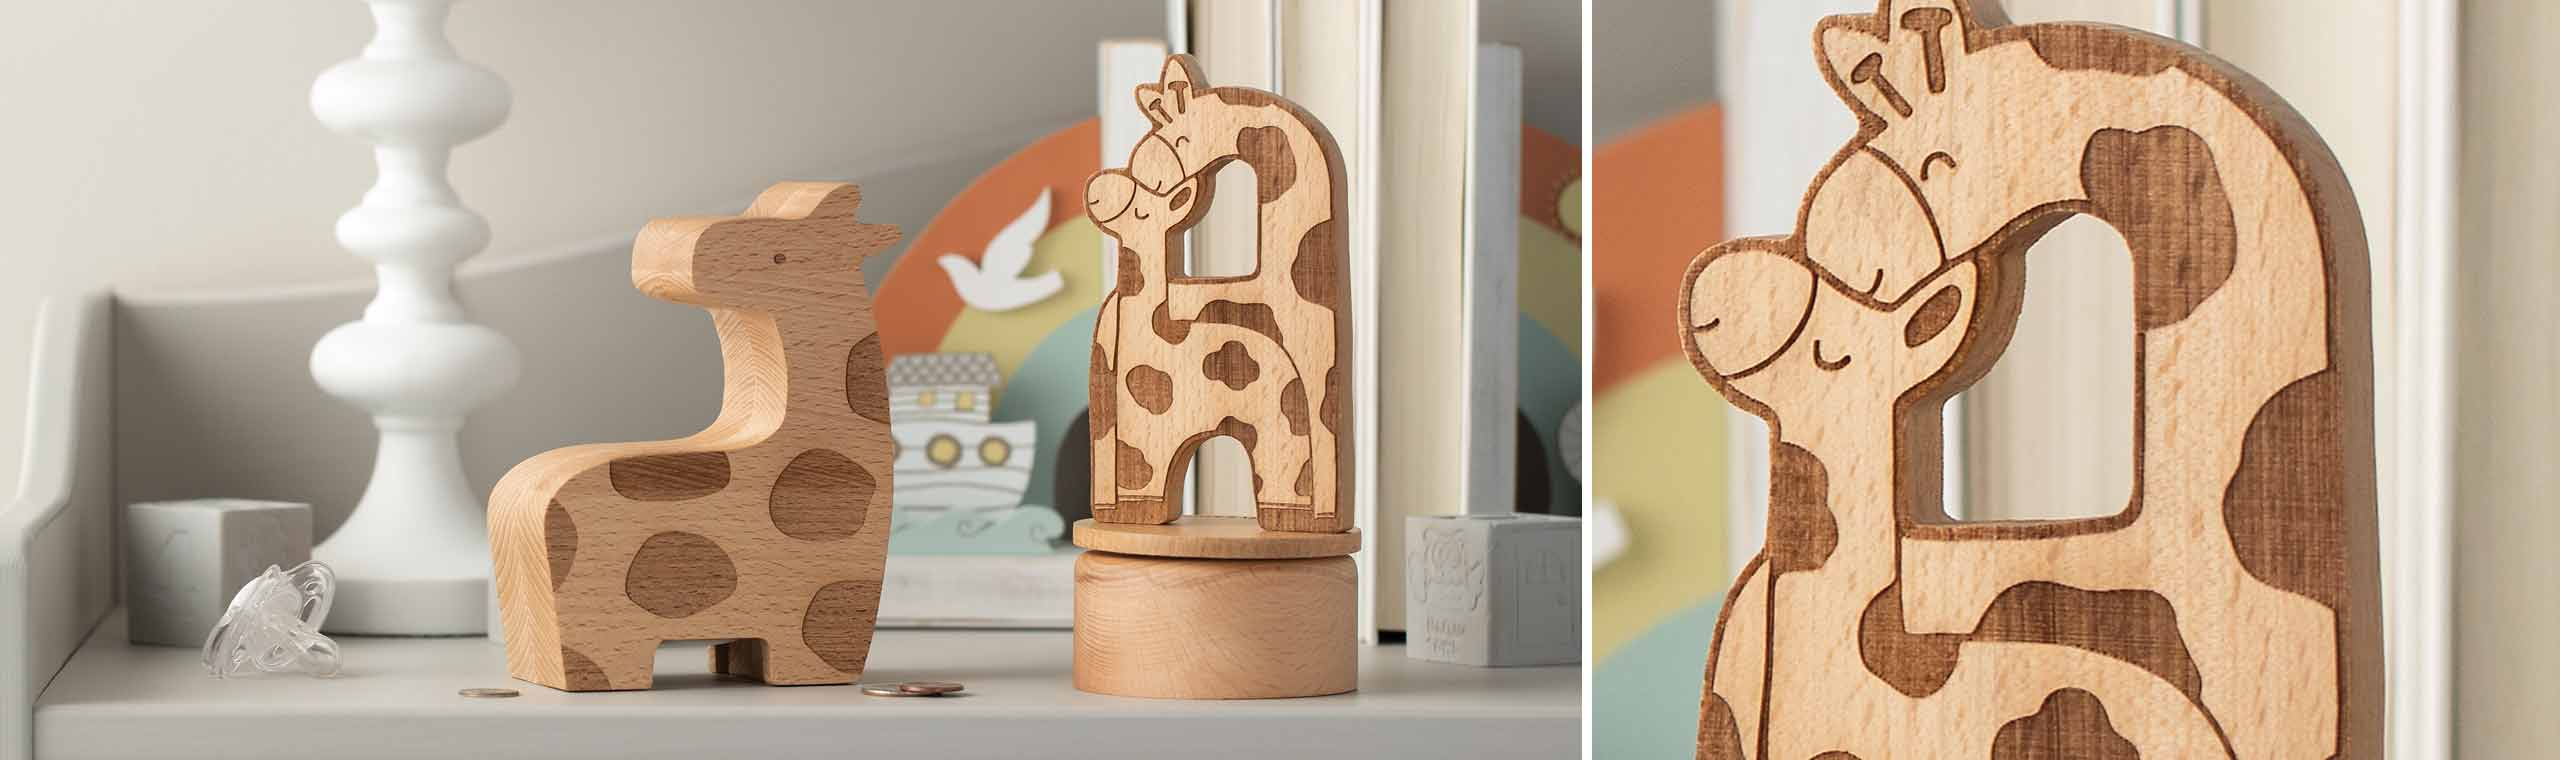 wooden giraffe toys comforting one another